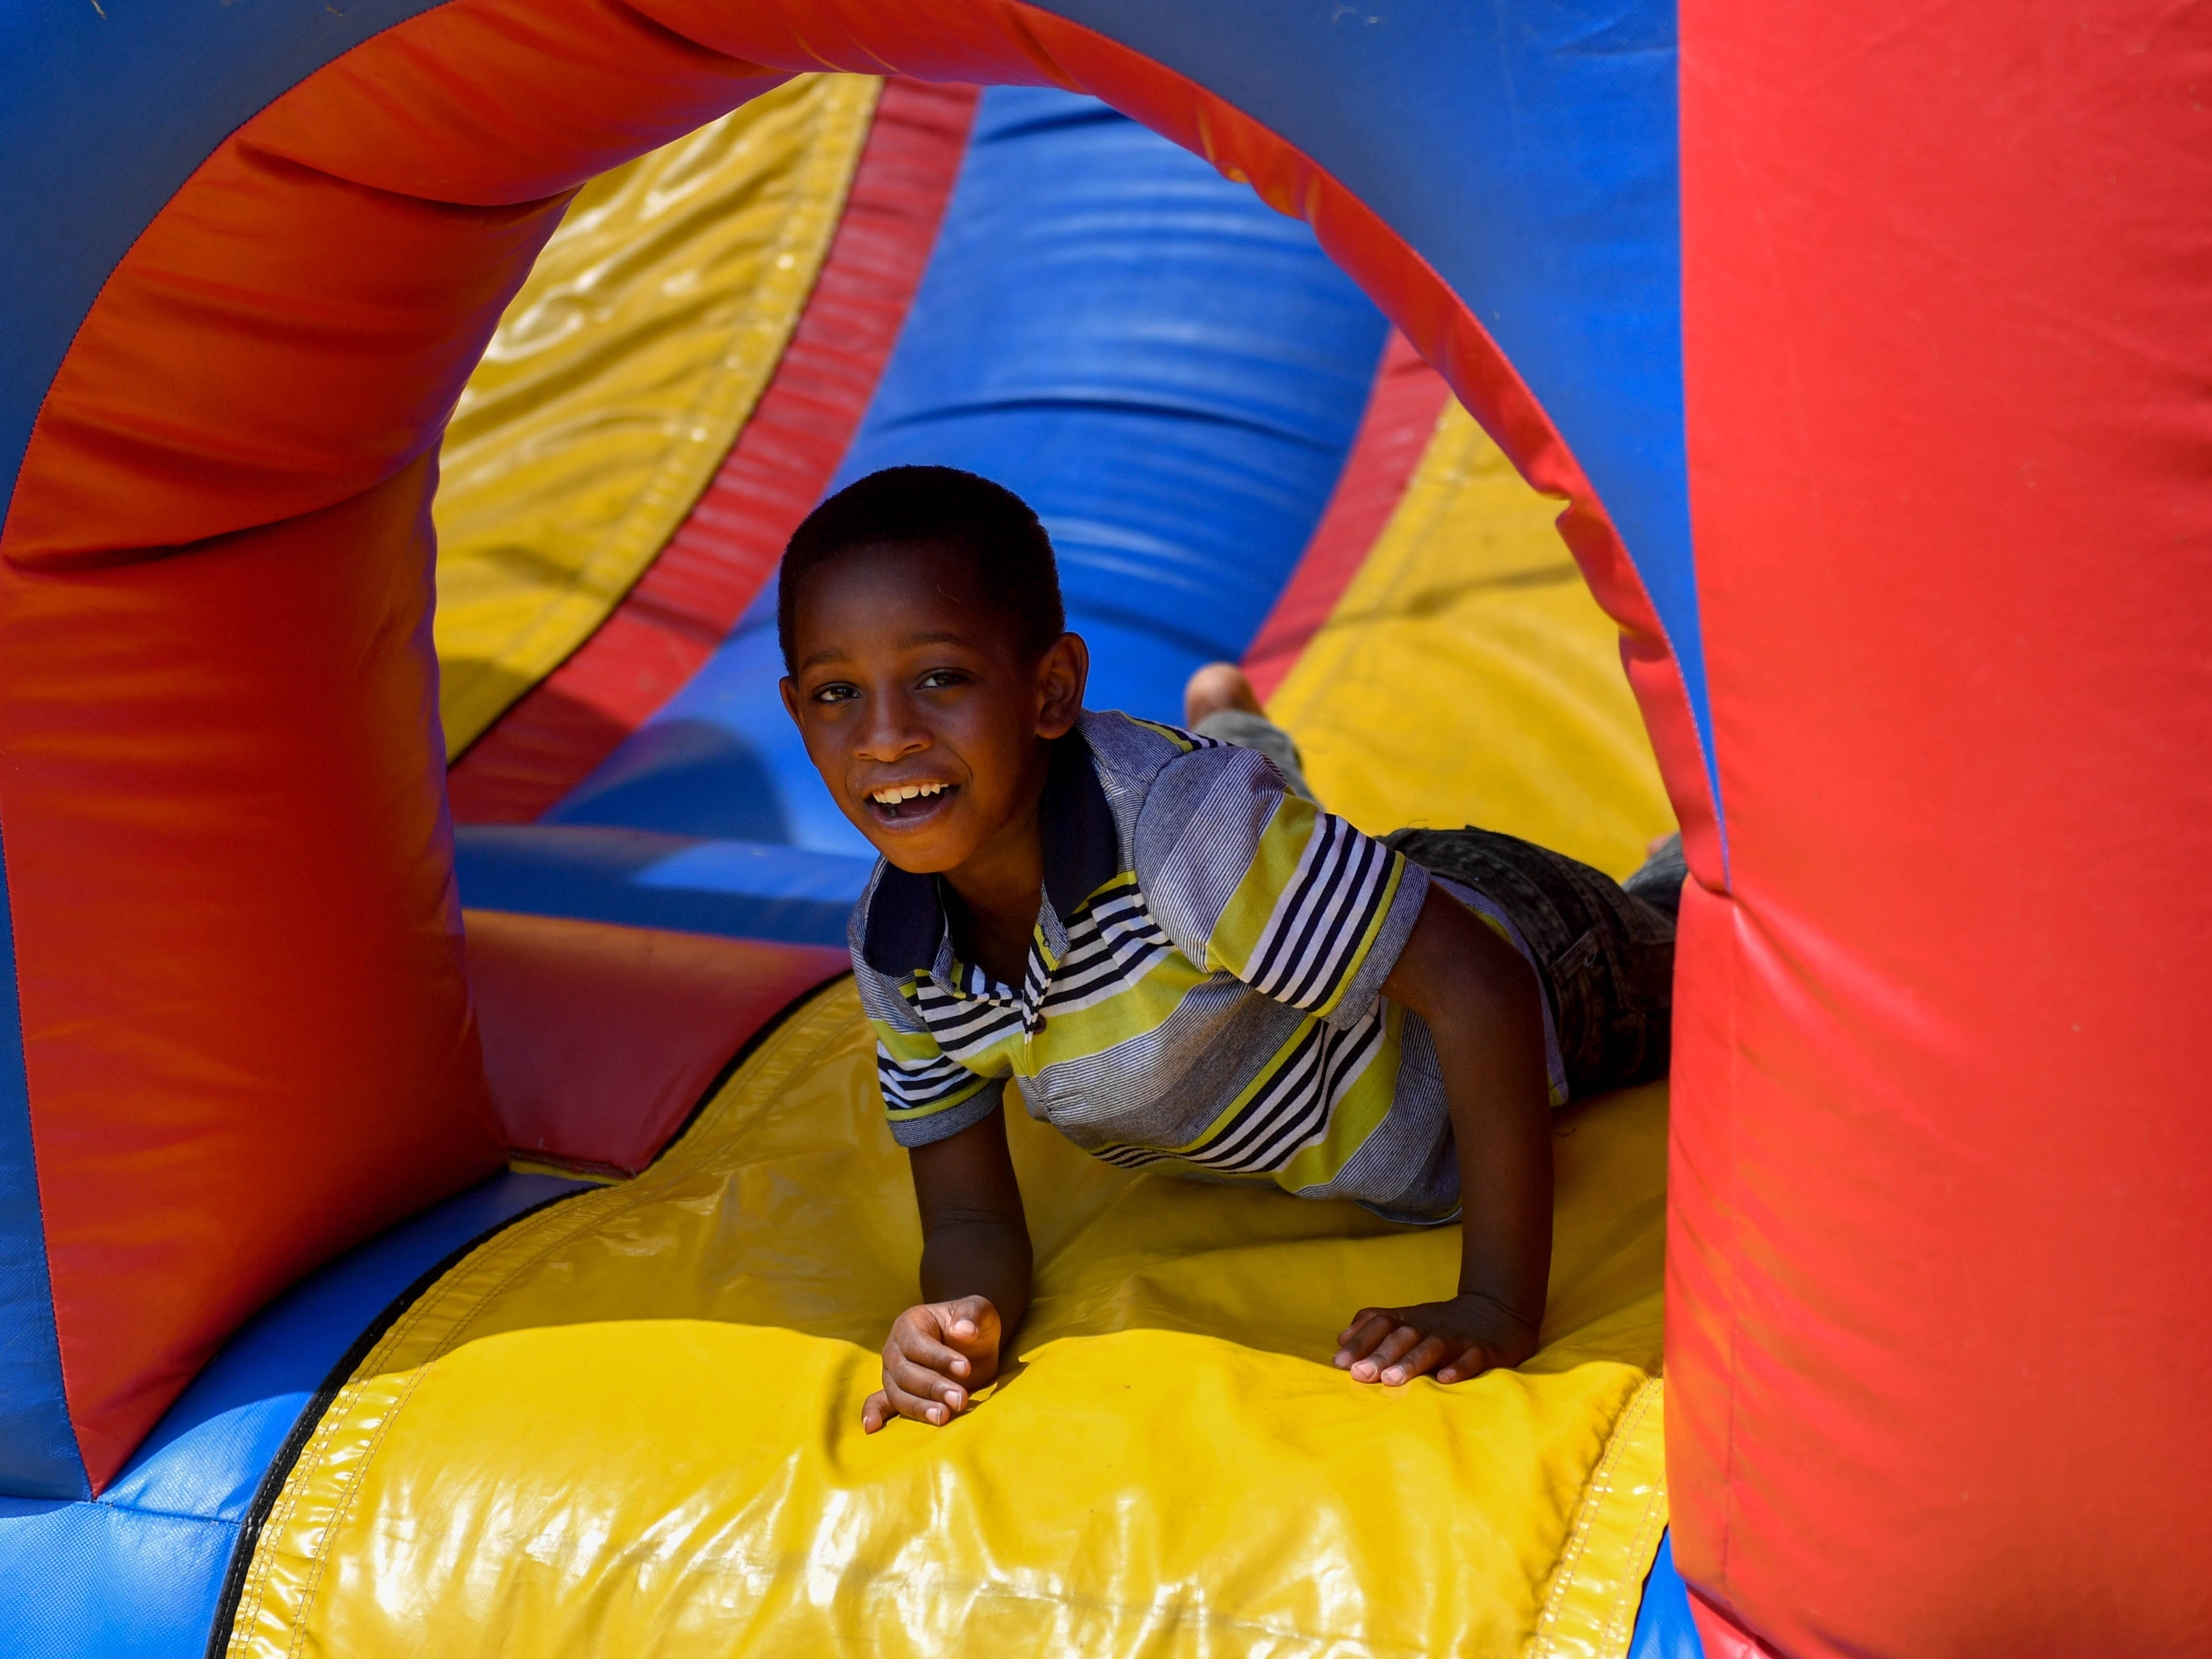 Maseyer Hope finishes the inflatable obstacle course during the City of York's United Back to School Resource Fair, Wednesday, Aug. 17, 2018.